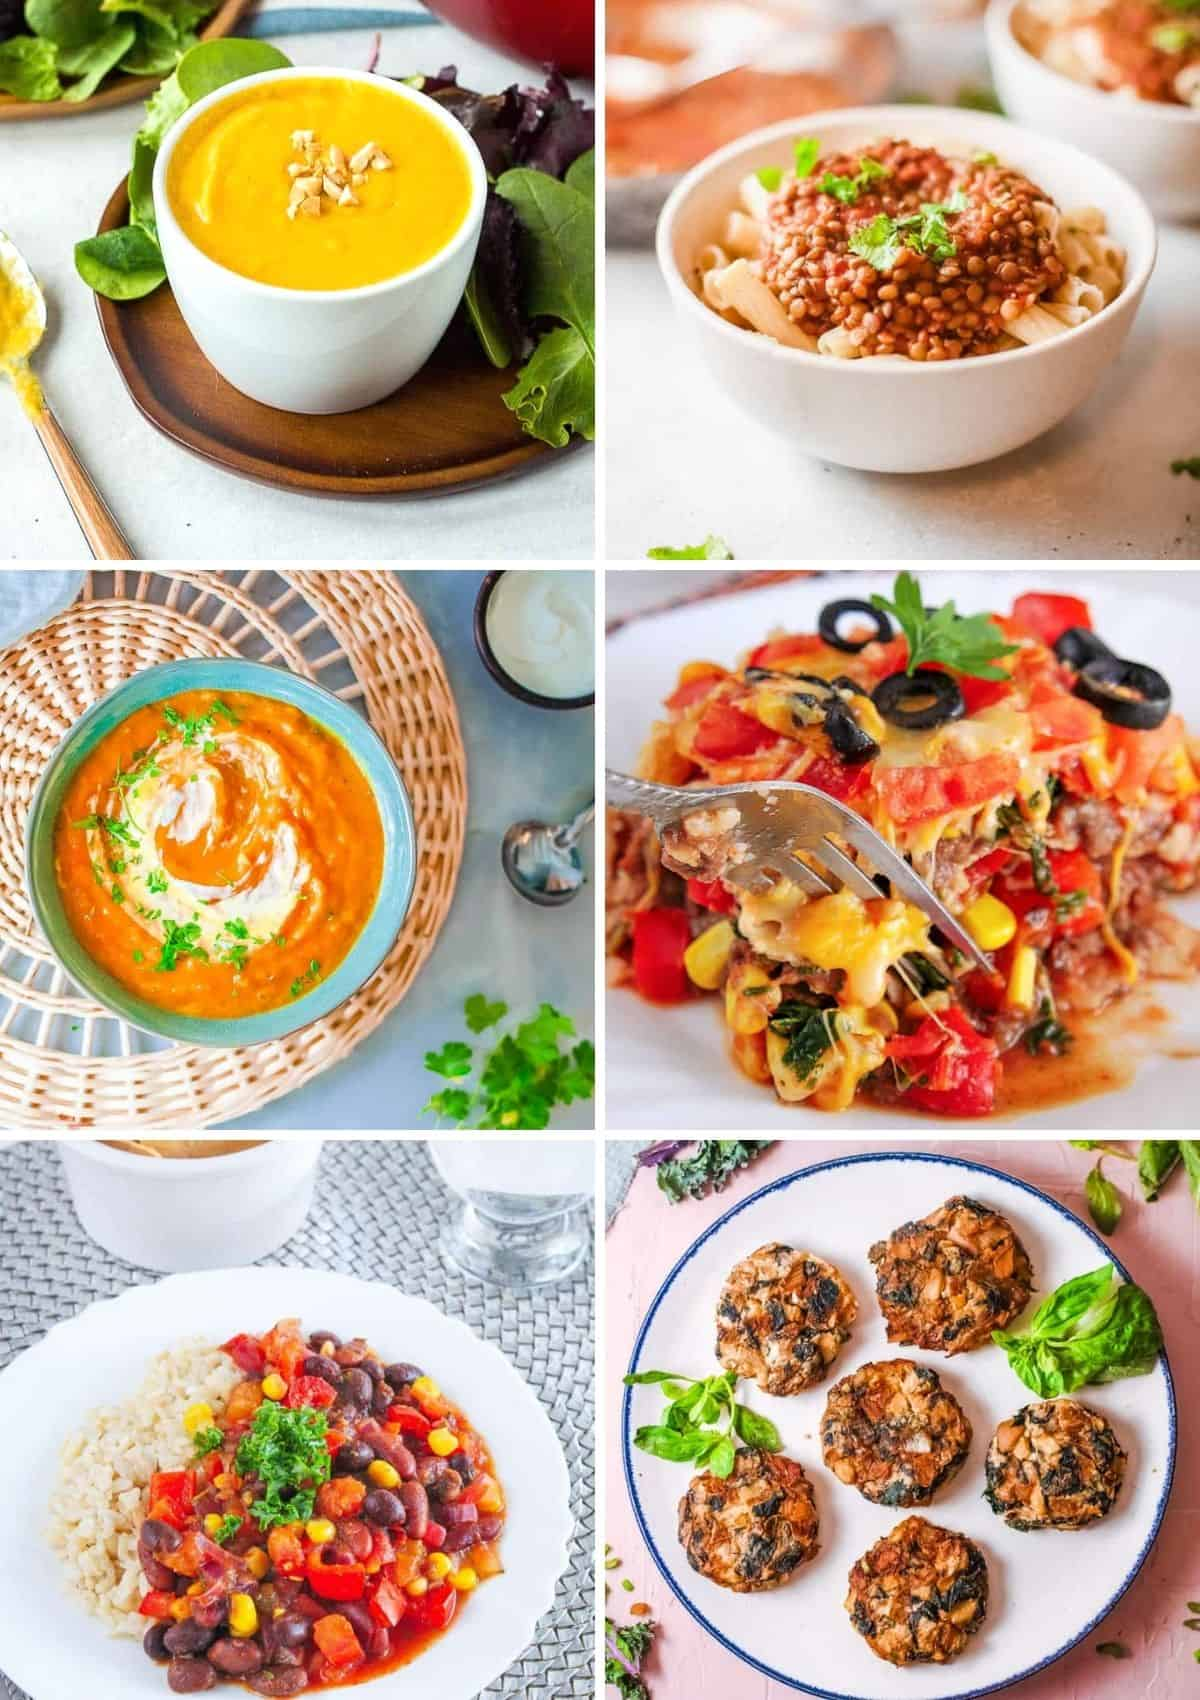 Baby dinner recipes collage: butternut squash soup, lentil bolognese, carrot soup, taco casserole, vegetarian chili, potato fritters.